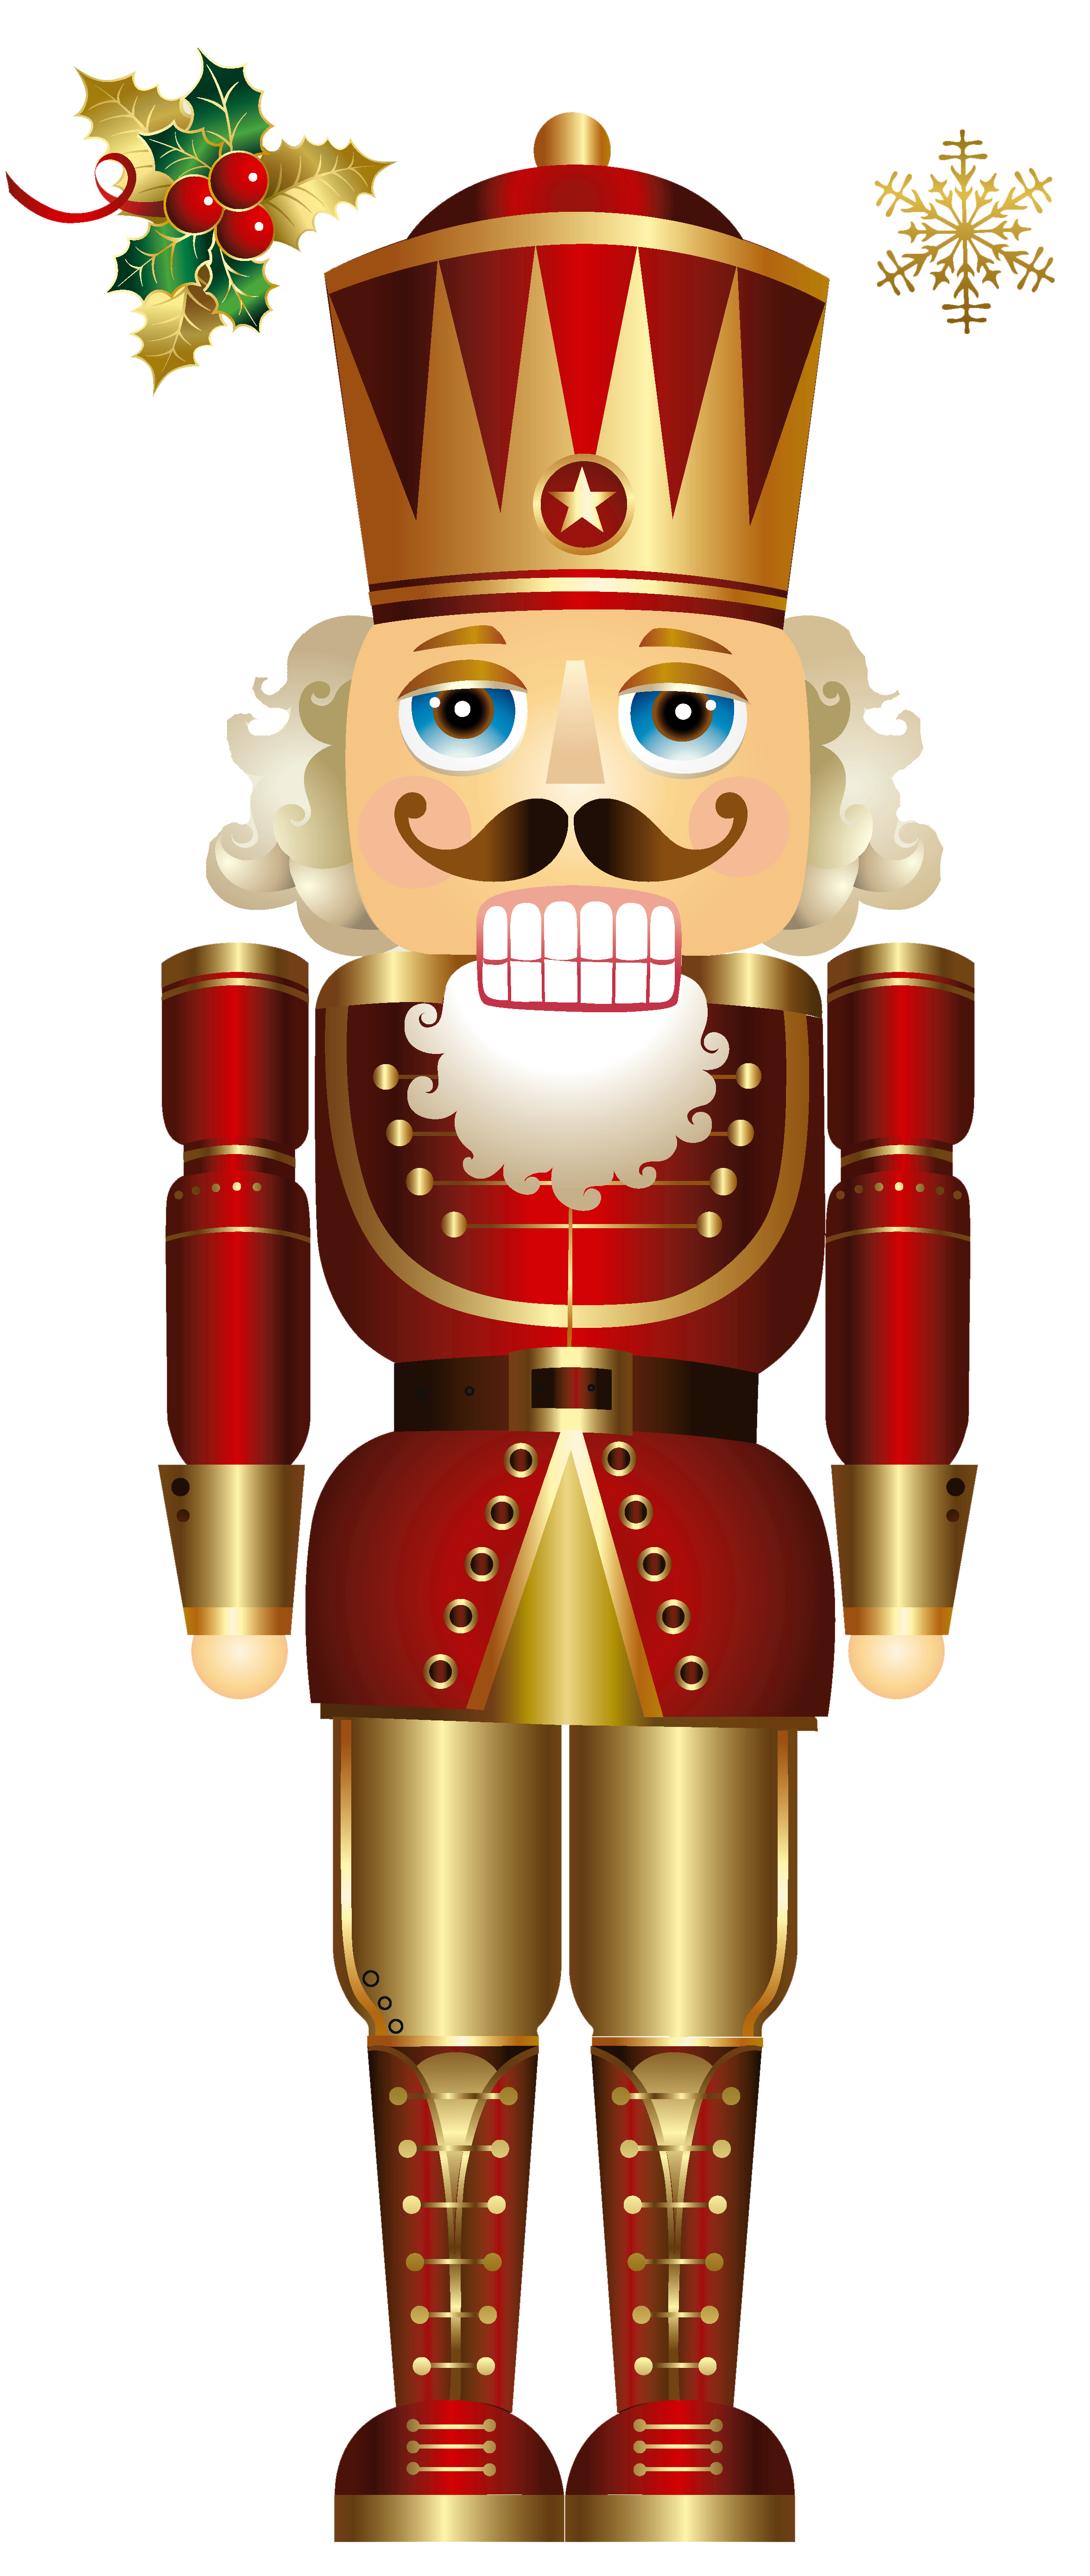 Nutcracker clipart image black and white Free Christmas Nutcracker Clipart #1 | Adult Coloring ... image black and white